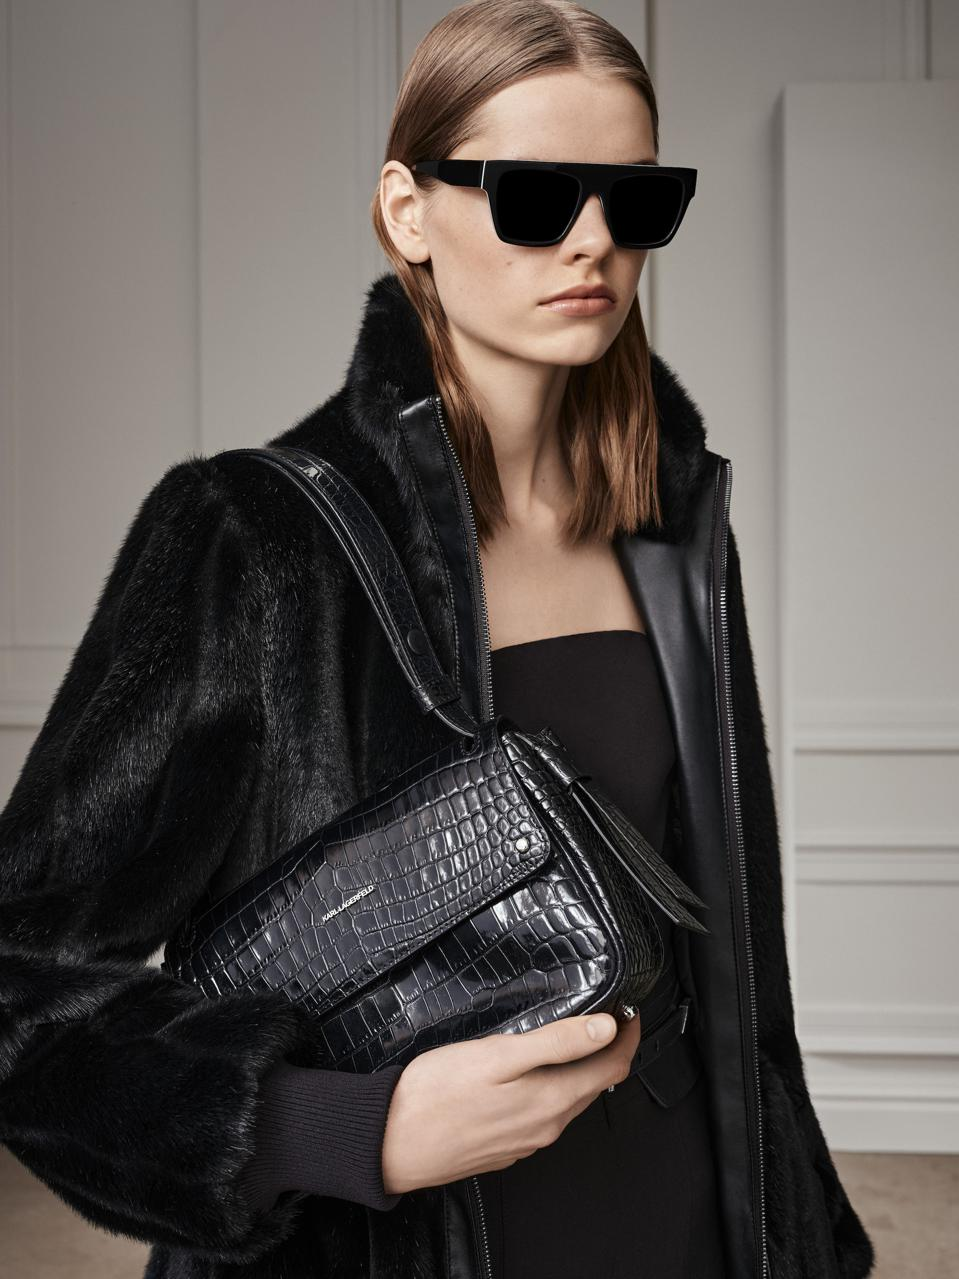 KARL LAGERFELD F/W 2021 COLLECTION